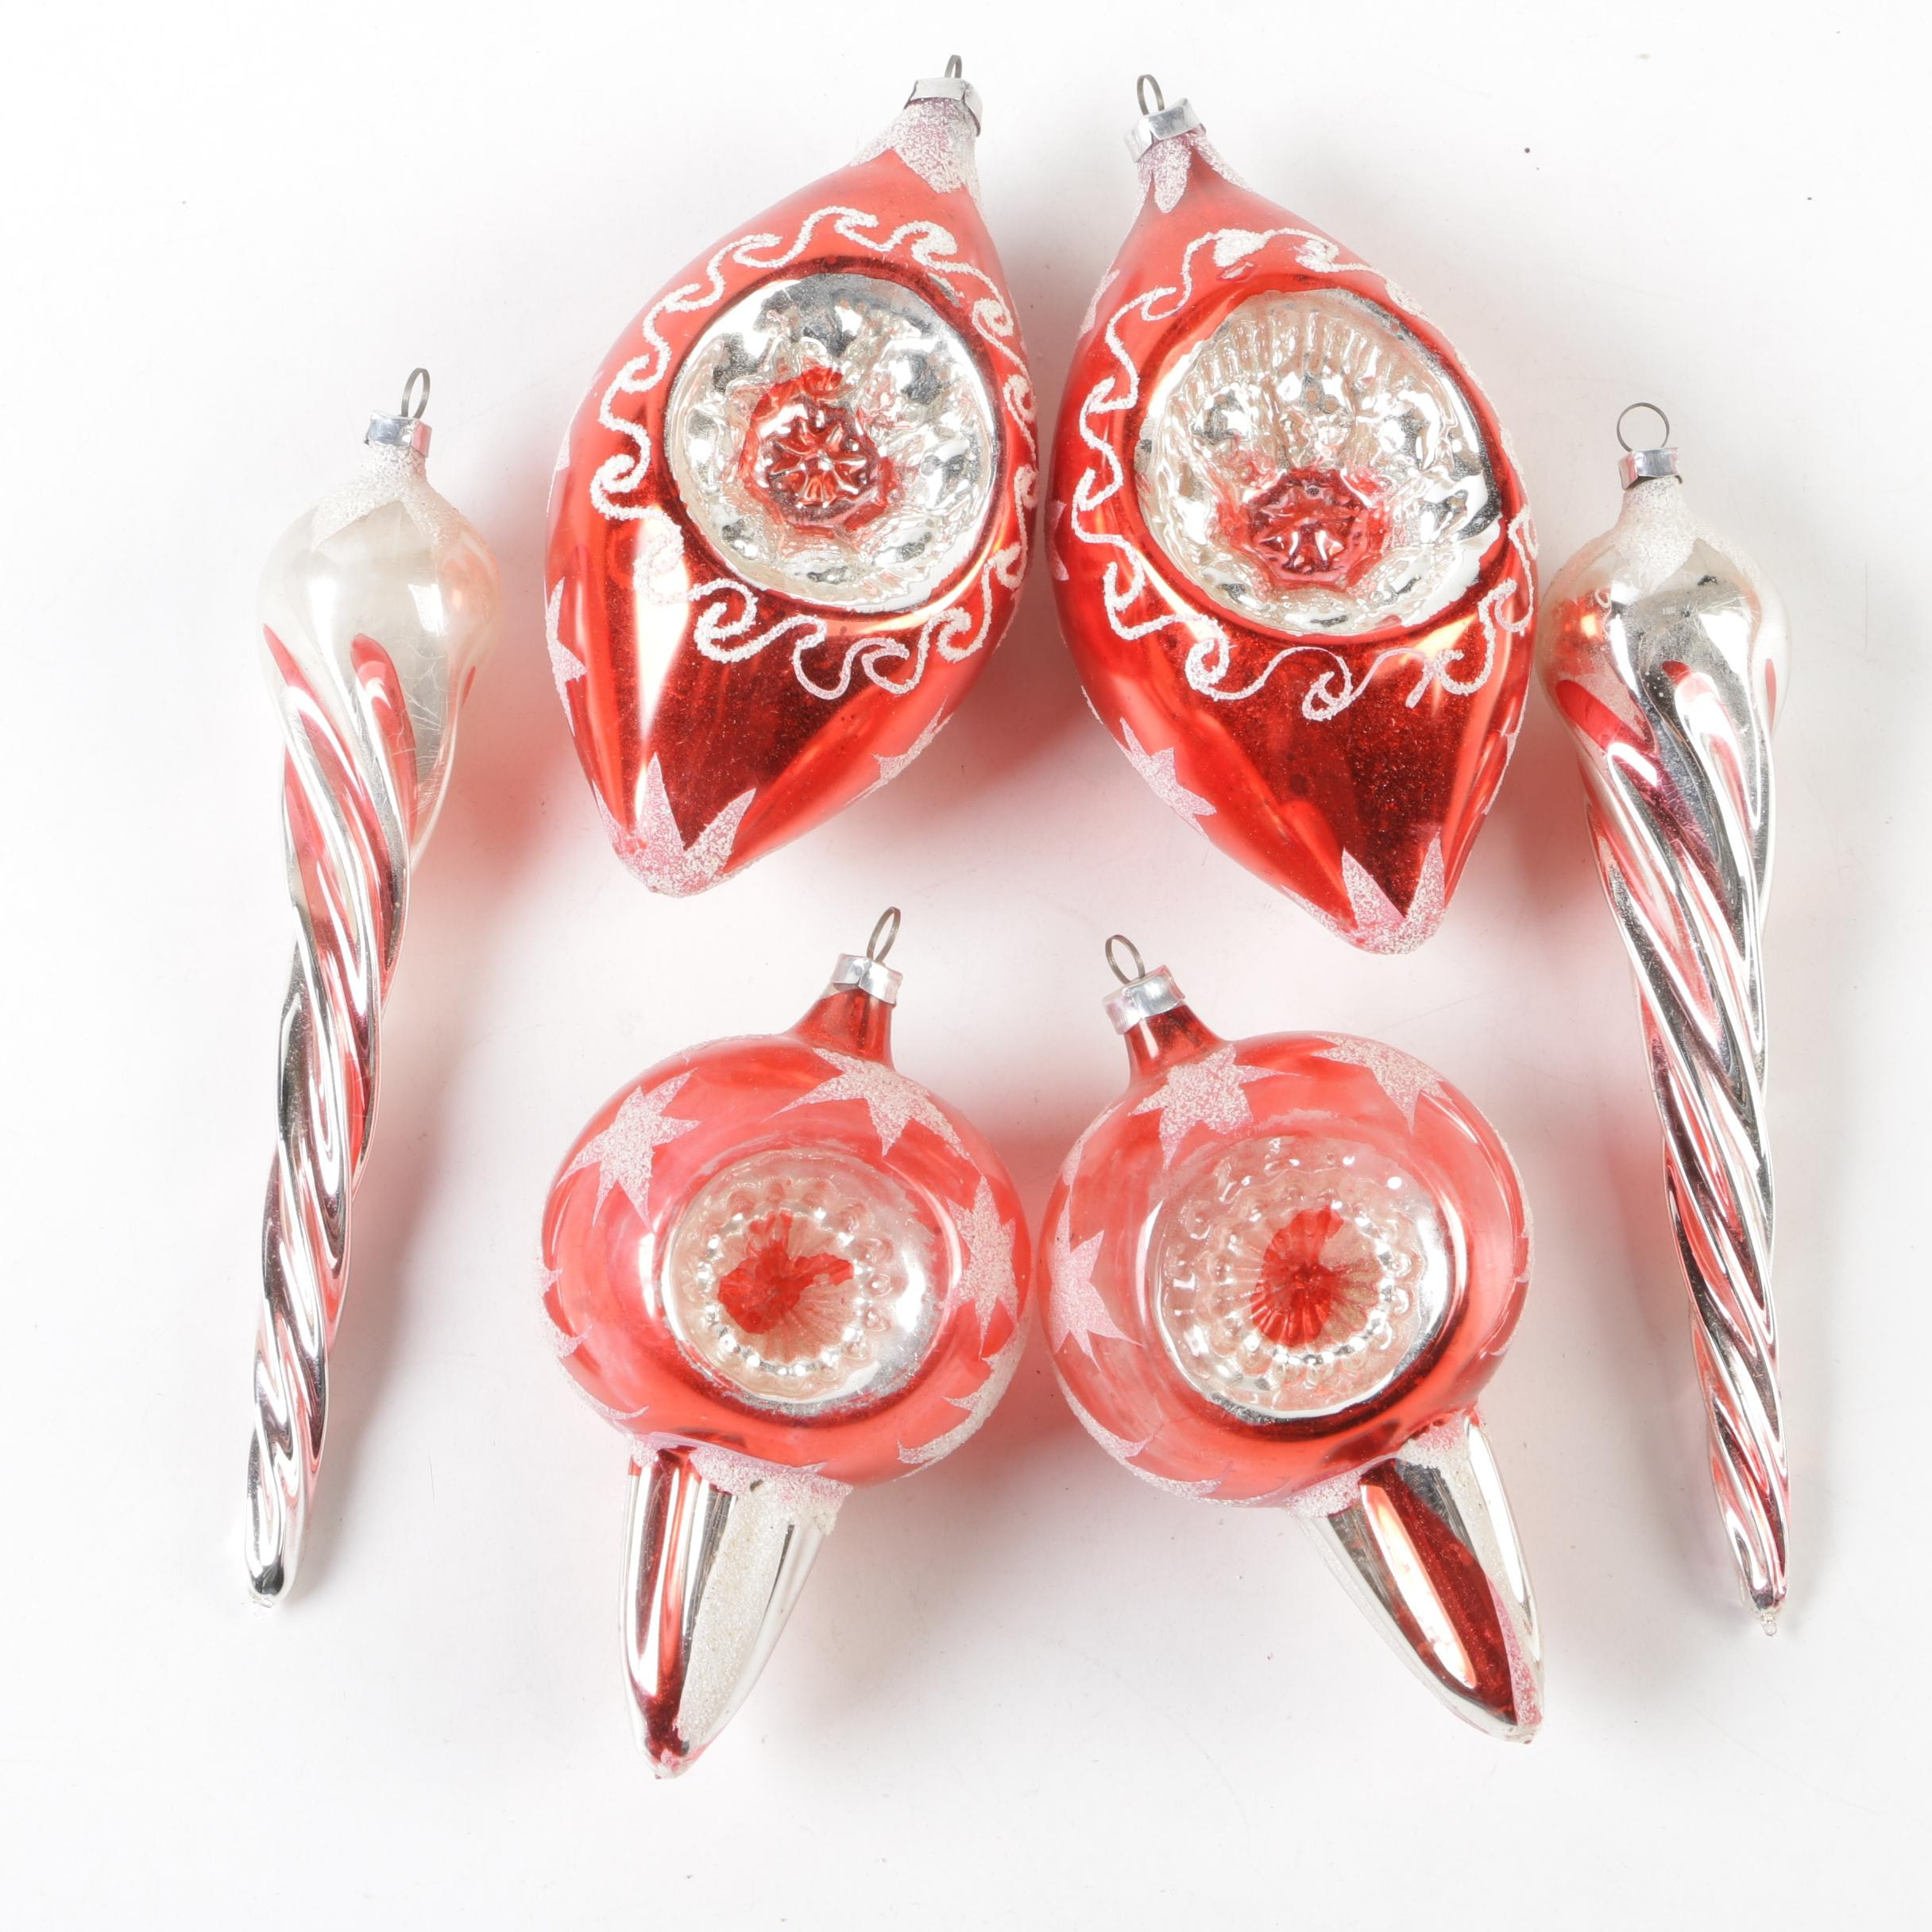 Shiny Brite West German Glass Christmas Ornaments, Mid-Century